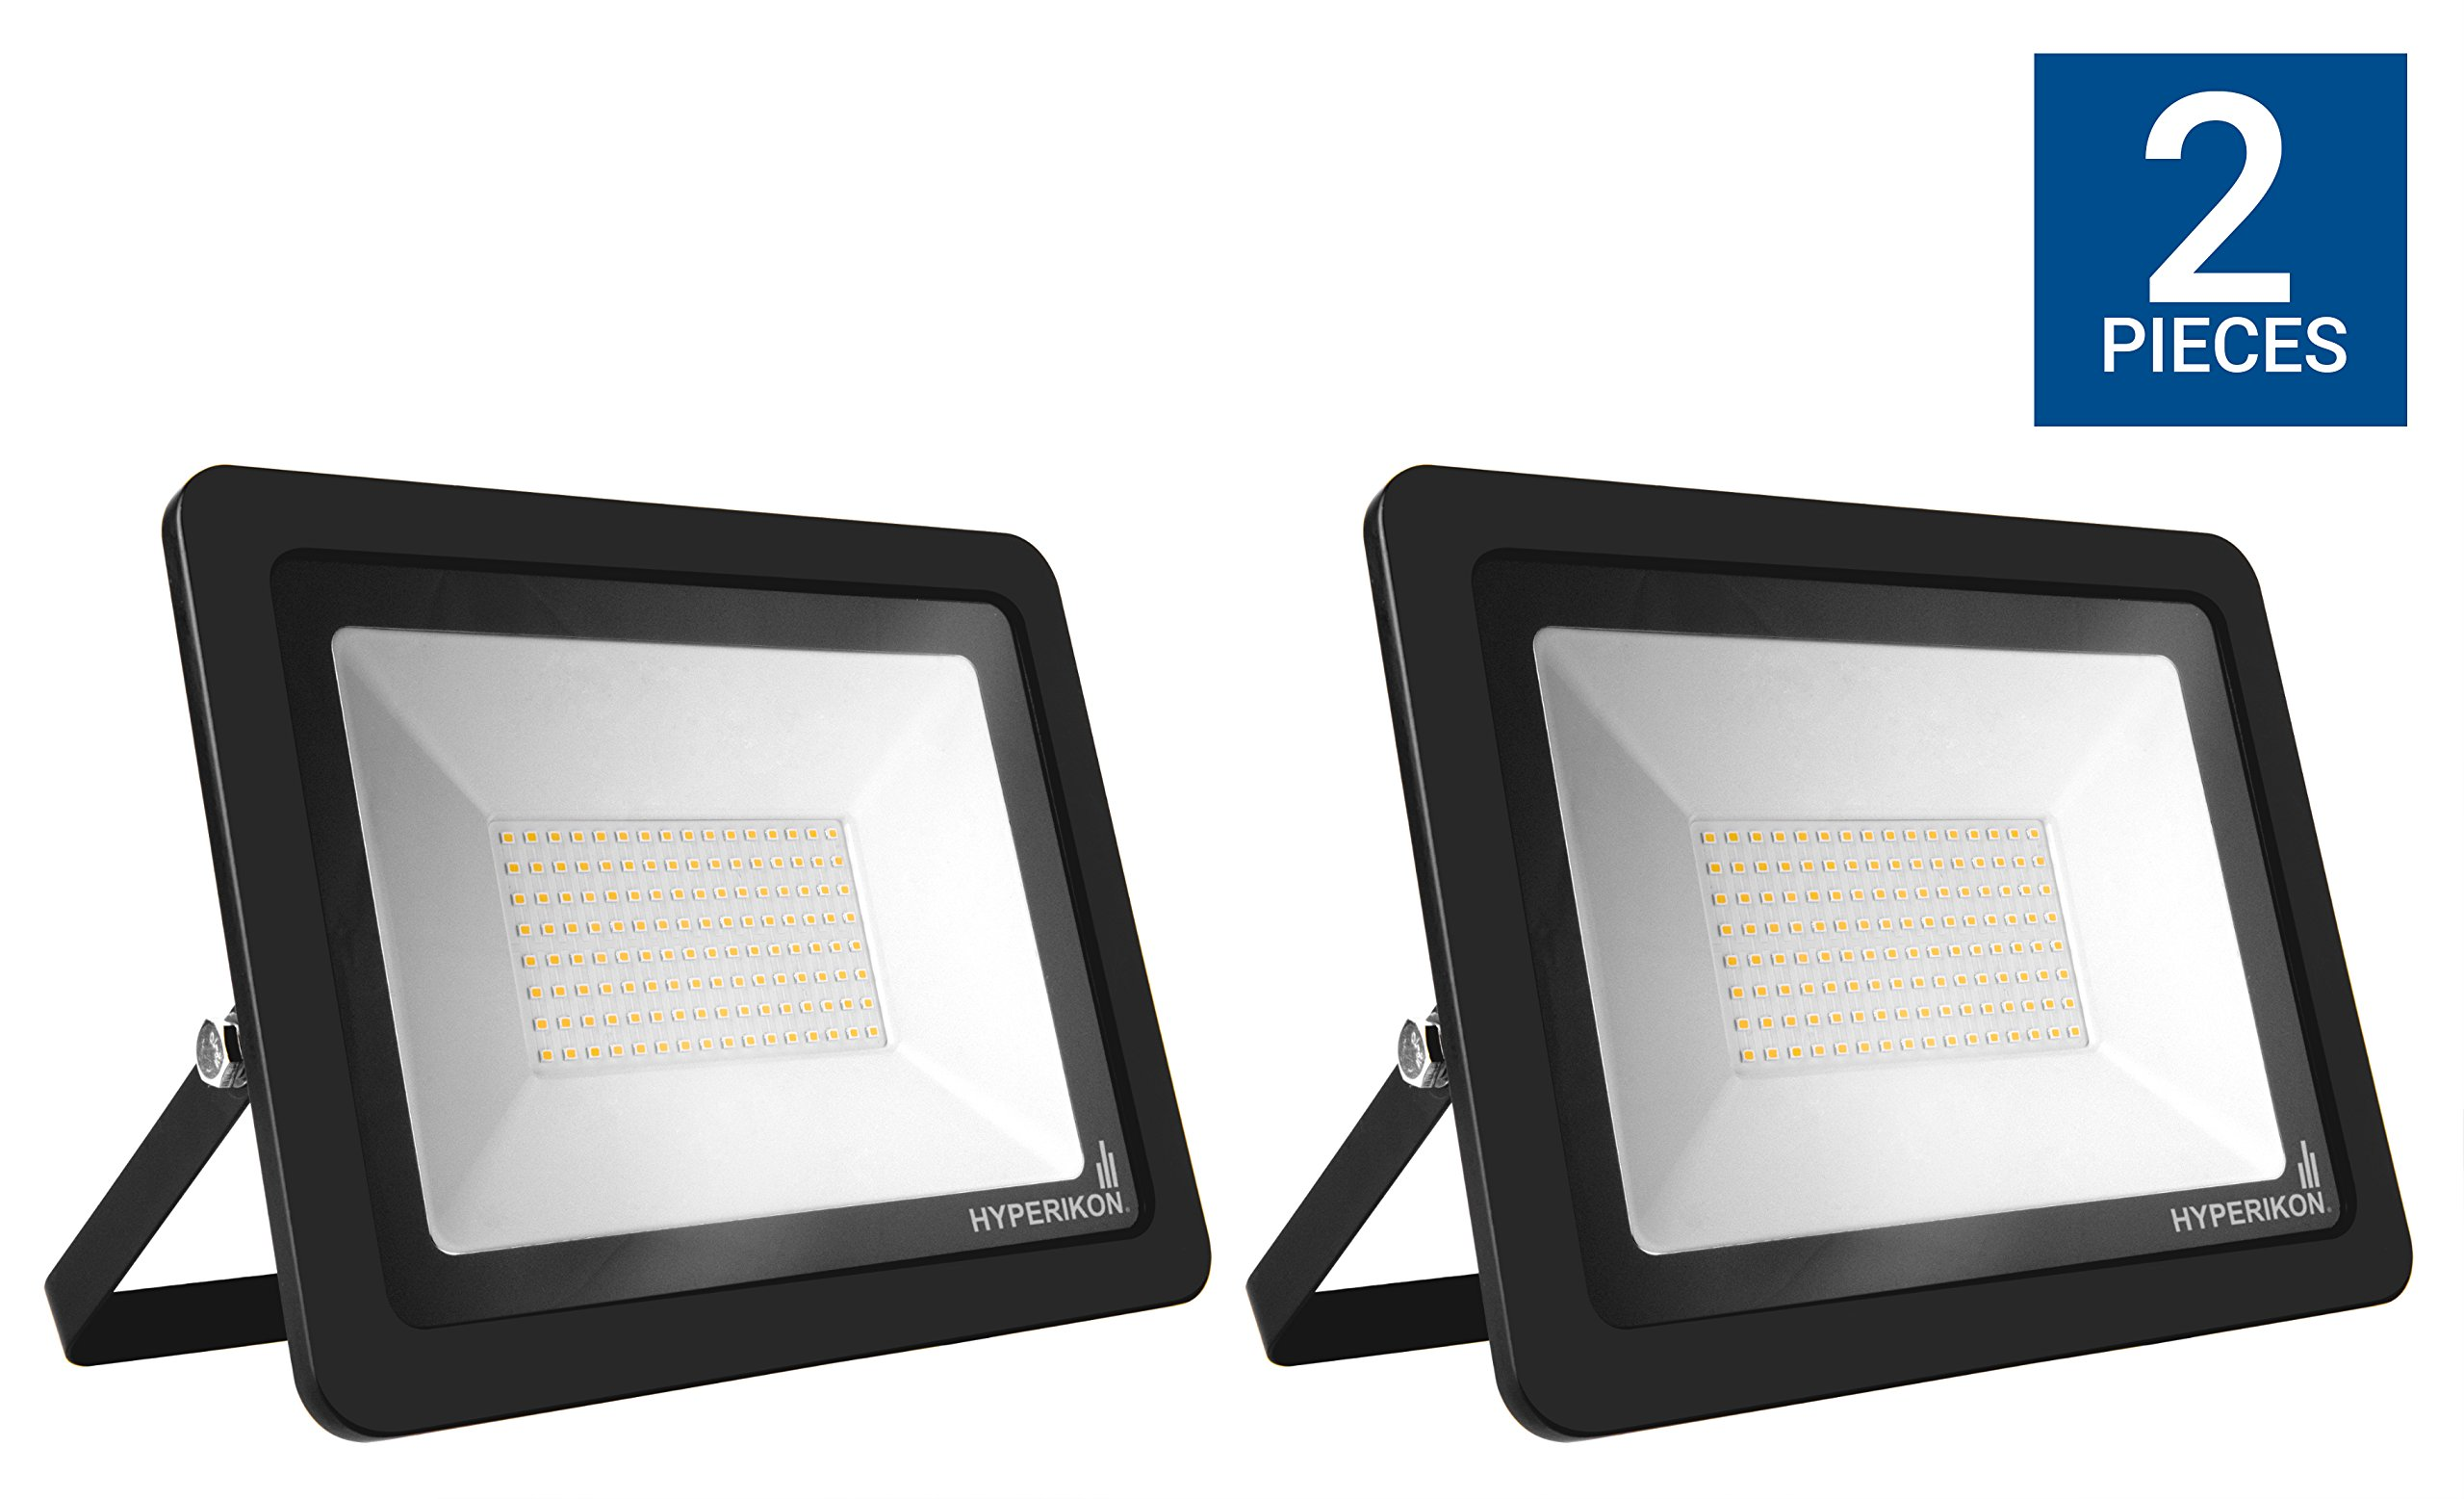 Hyperikon LED Flood Light 100W (500w Eq.) 180° Rotatable Bracket, 5000k, 8000 Lumens, Super Bright Outdoor LED Floodlight, Weatherproof IP65, UL suitable for dry and damp locations, 110V, 2-Pack by Hyperikon